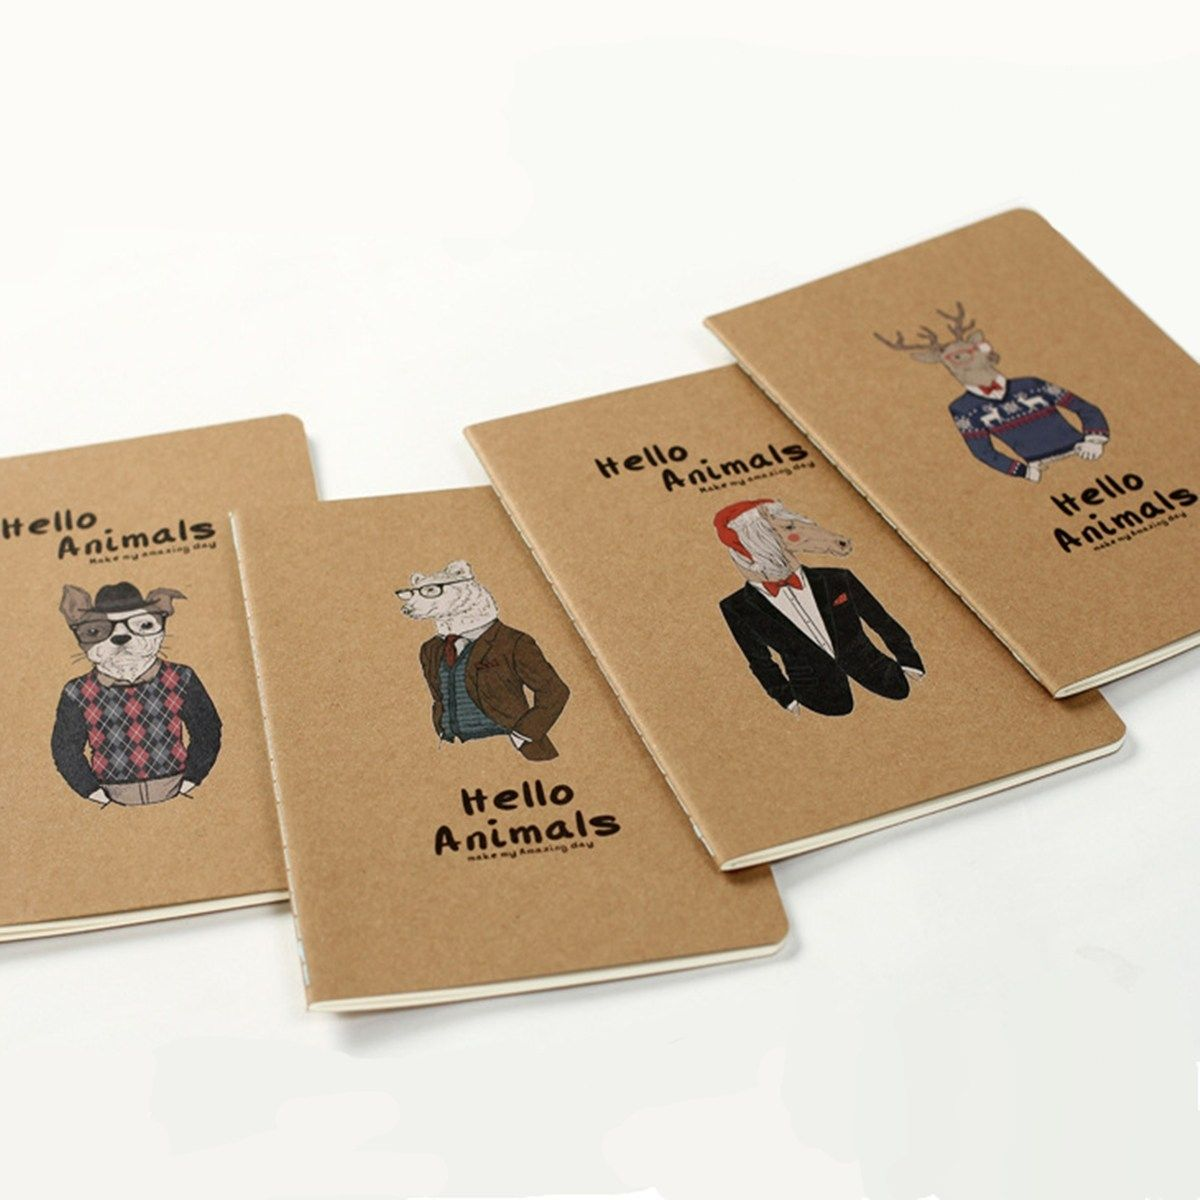 Los Angeles notepad printing by the graphic design experts